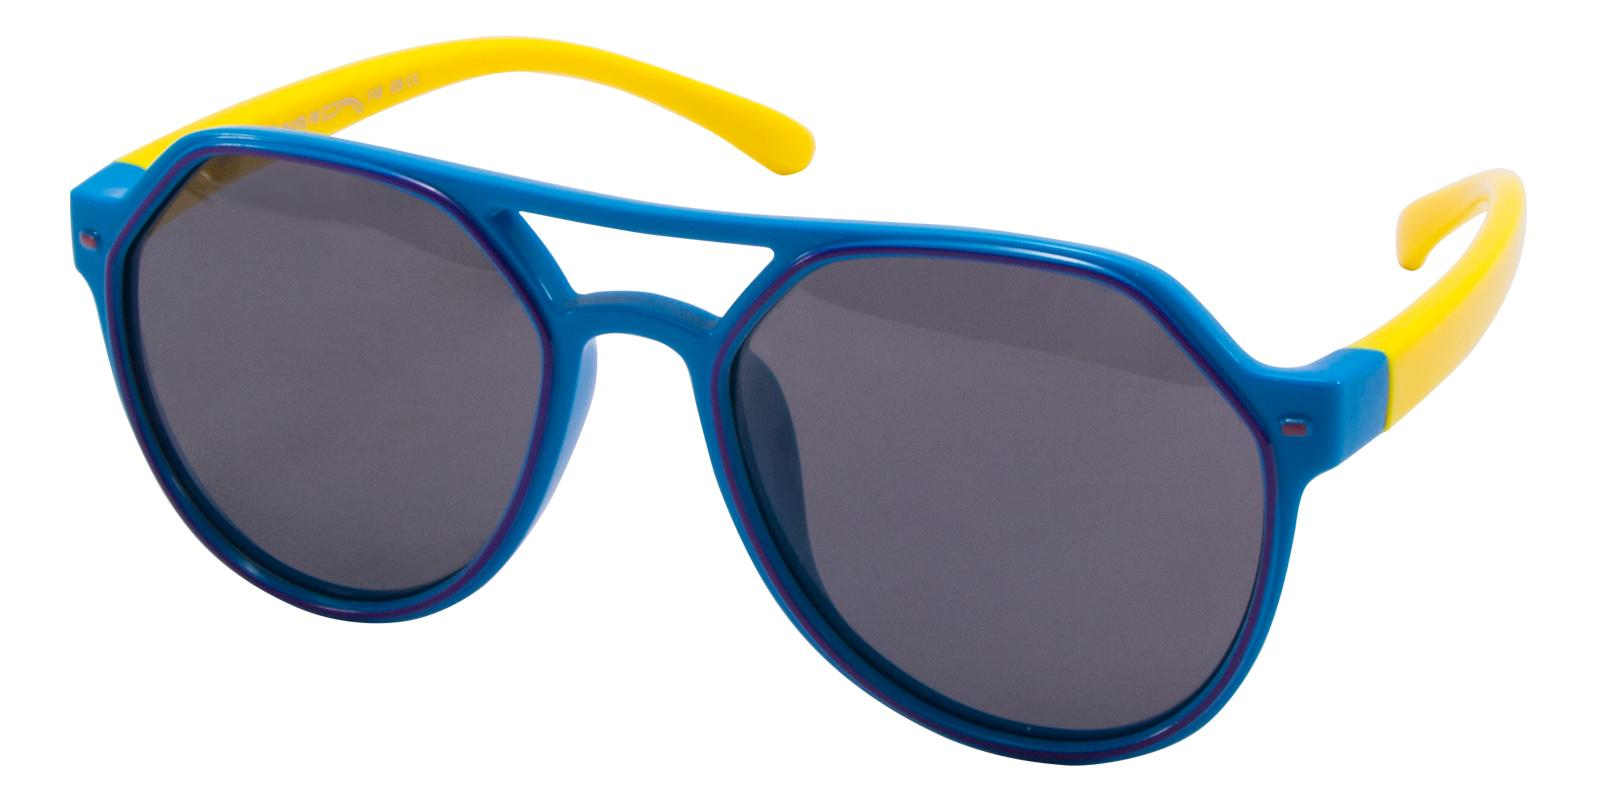 Pilot Blue TR Sunglasses , UniversalBridgeFit Frames from ABBE Glasses